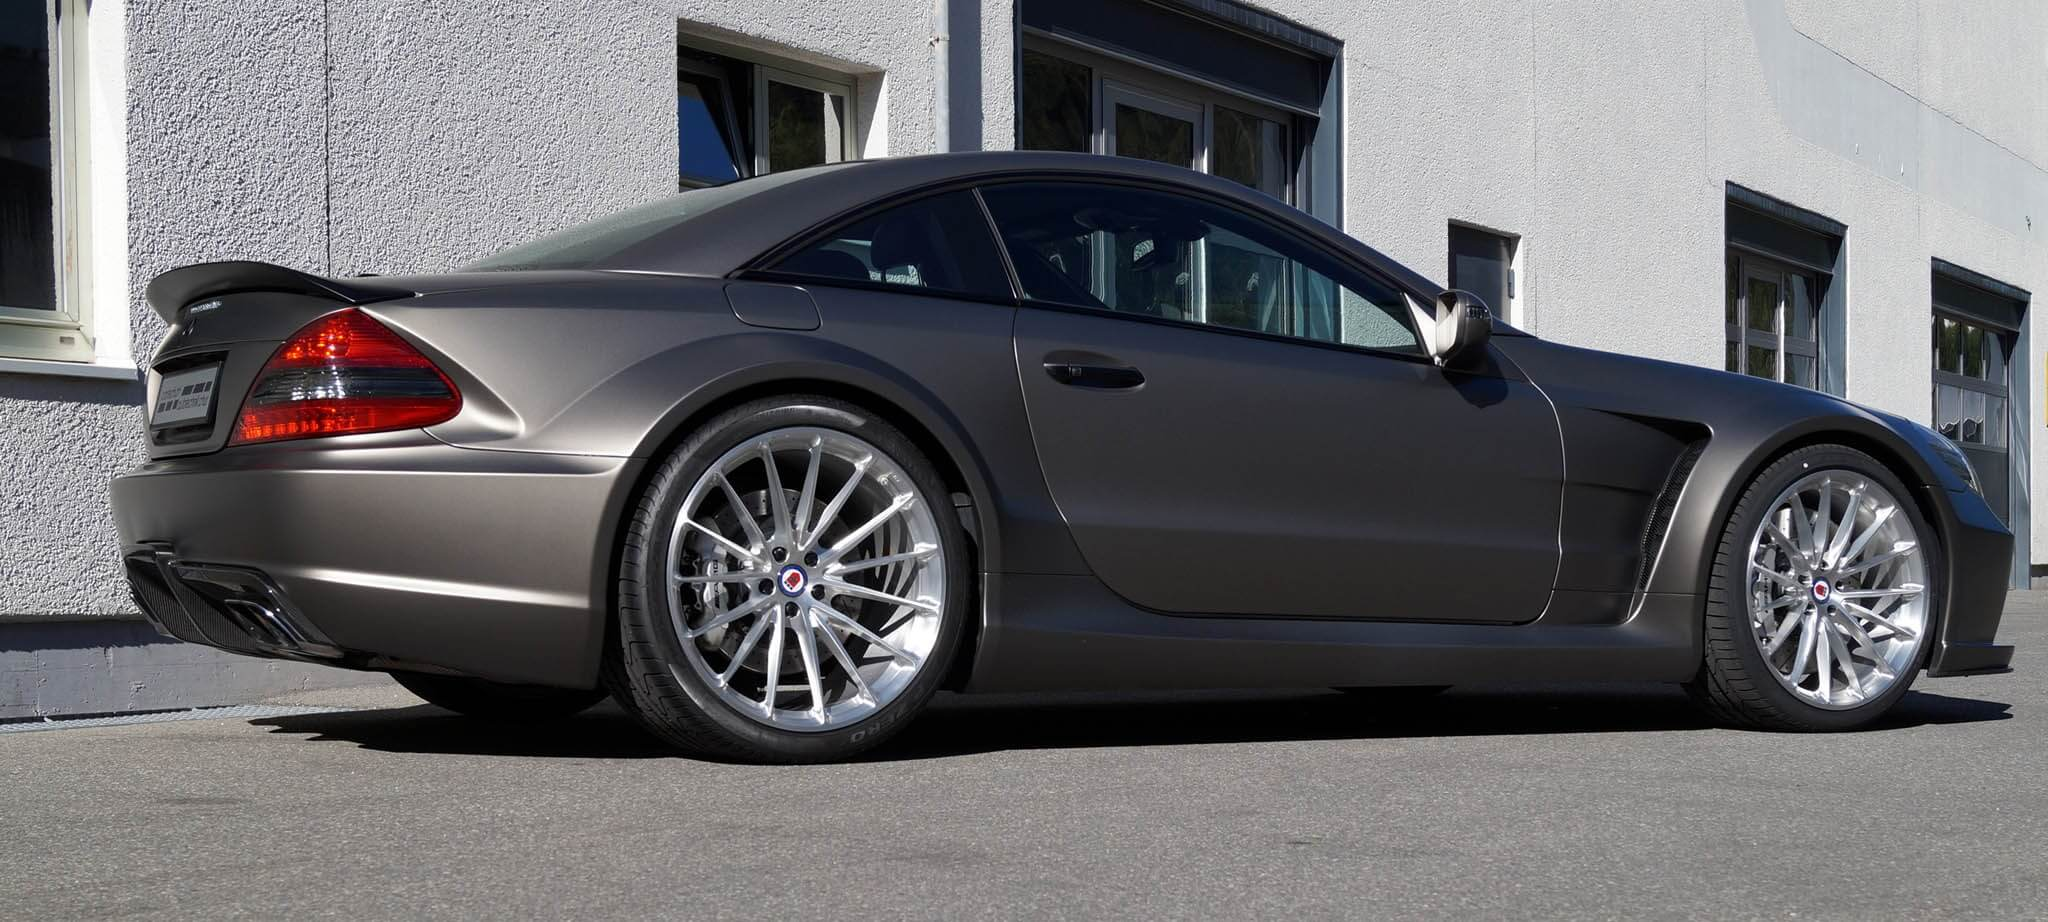 All Types amg black series wheels : Pewter Silver Mercedes-Benz SL65 AMG Black Series with HRE P103 in ...